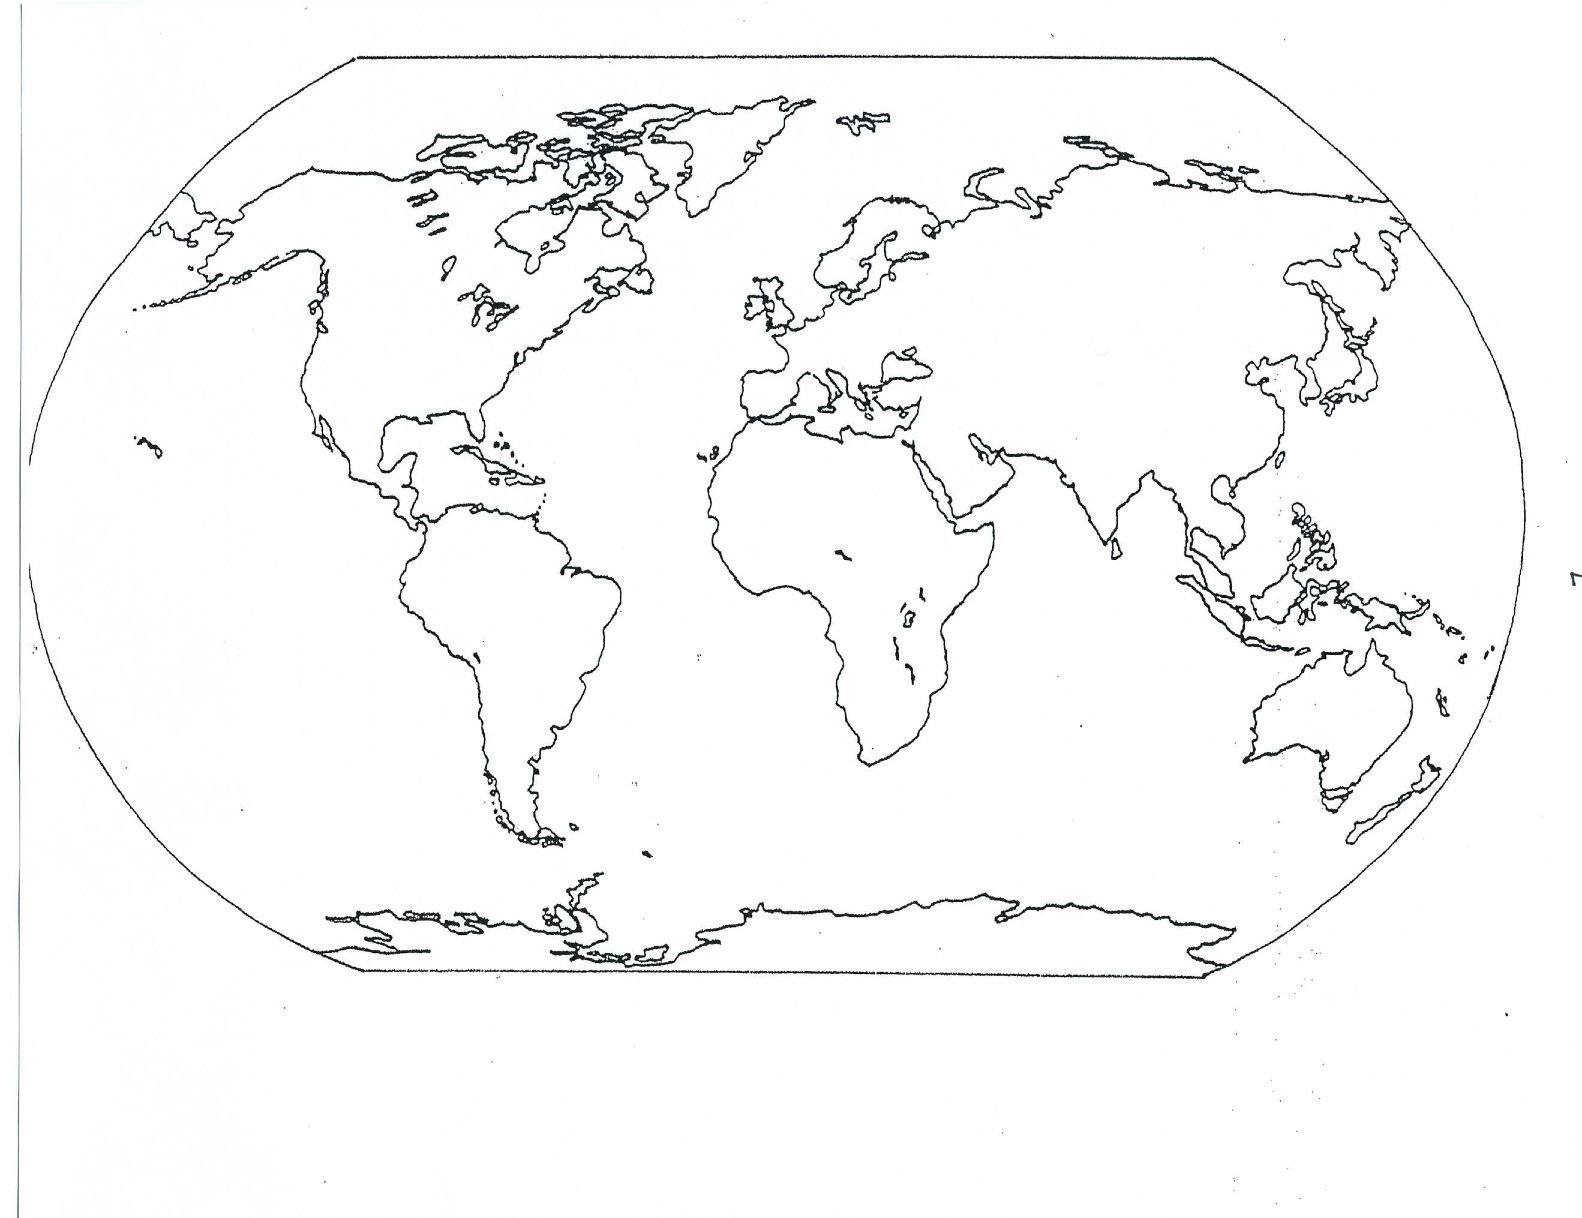 Blank Seven Continents Map | Mr.guerrieros Blog: Blank And Filled-In - Blank Continent Map Printable